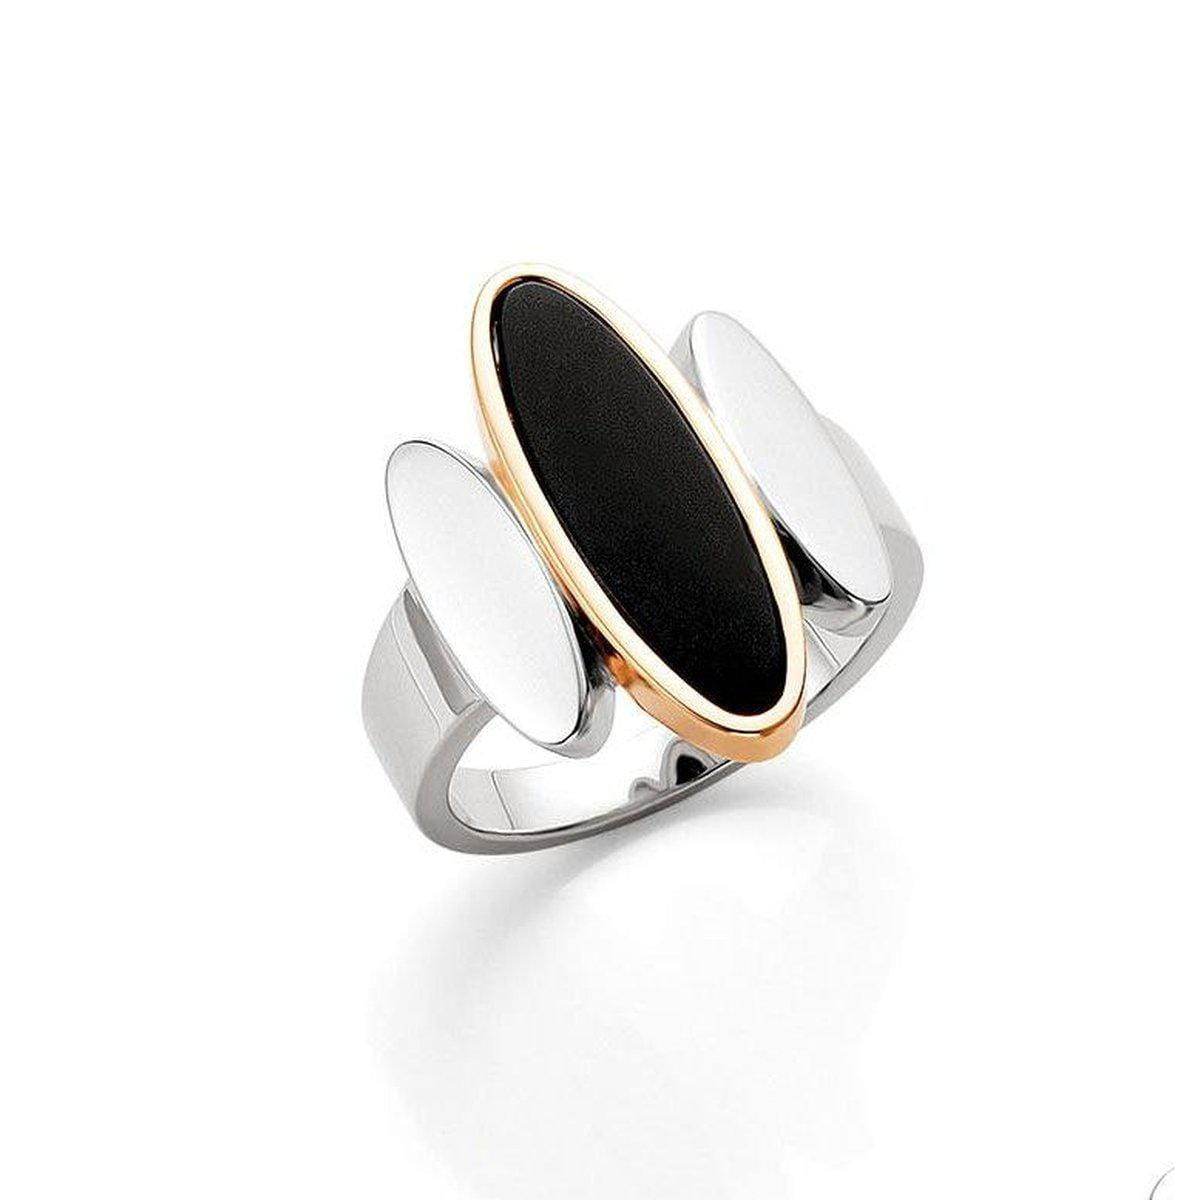 Rose Gold Plated Sterling Silver Onyx Ring - 42/03201-Breuning-Renee Taylor Gallery